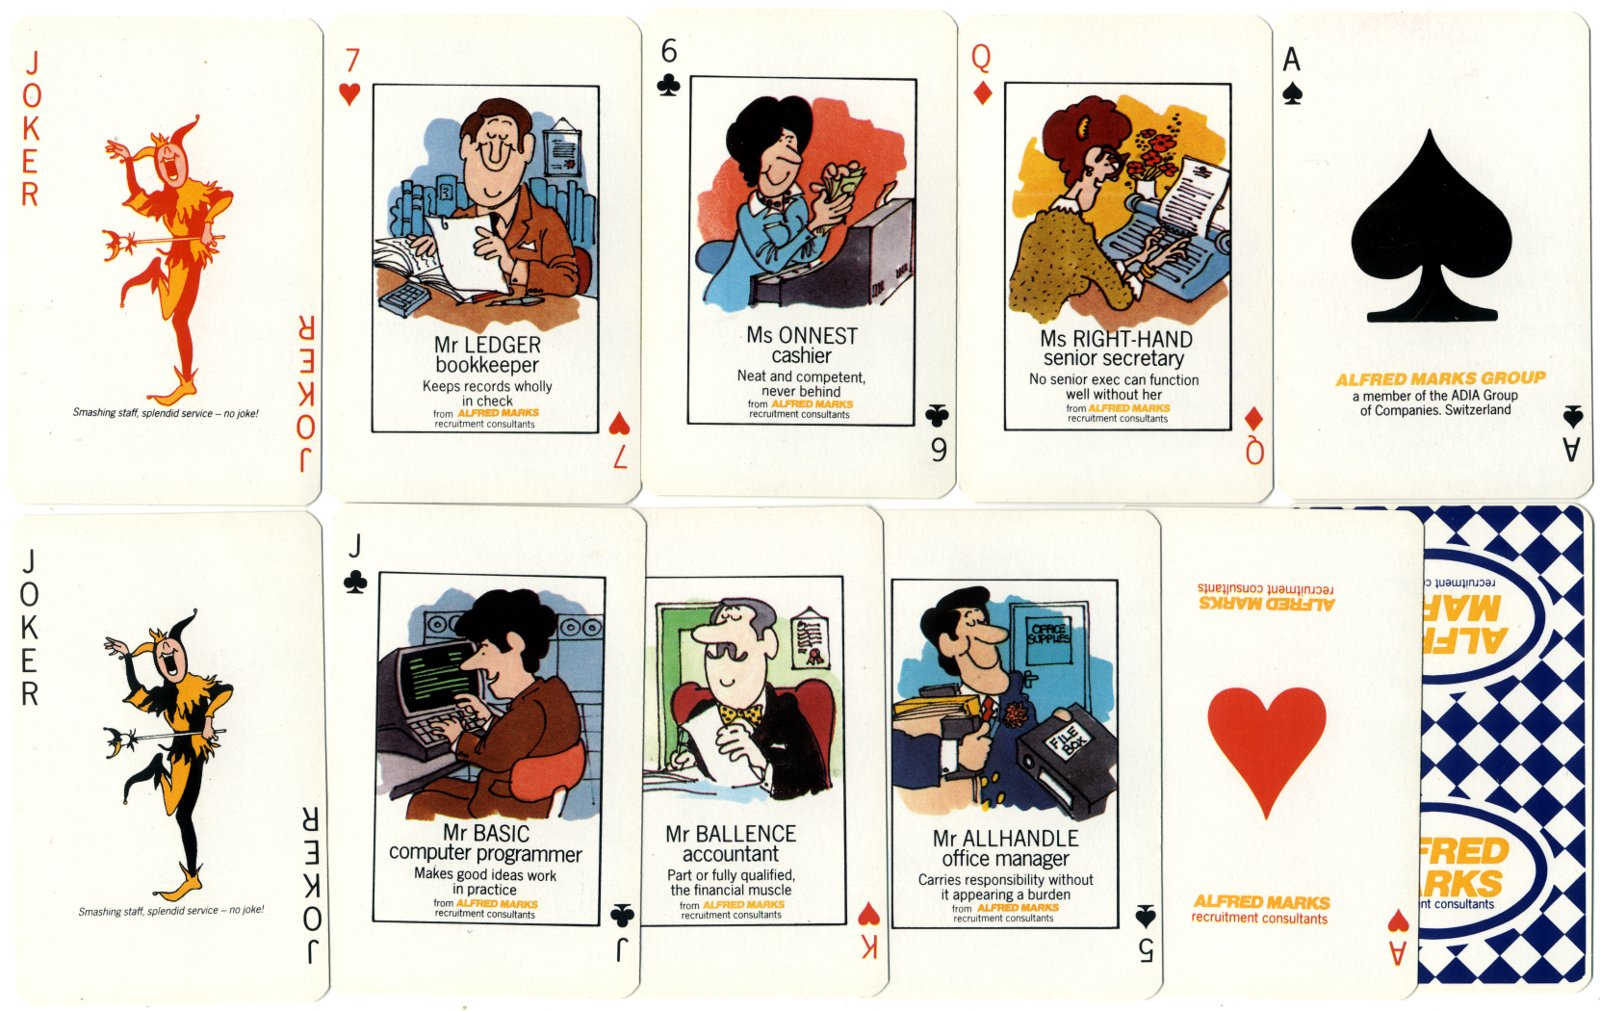 Alfred Marks Recruitment Consultants publicity playing cards, mid-1980s